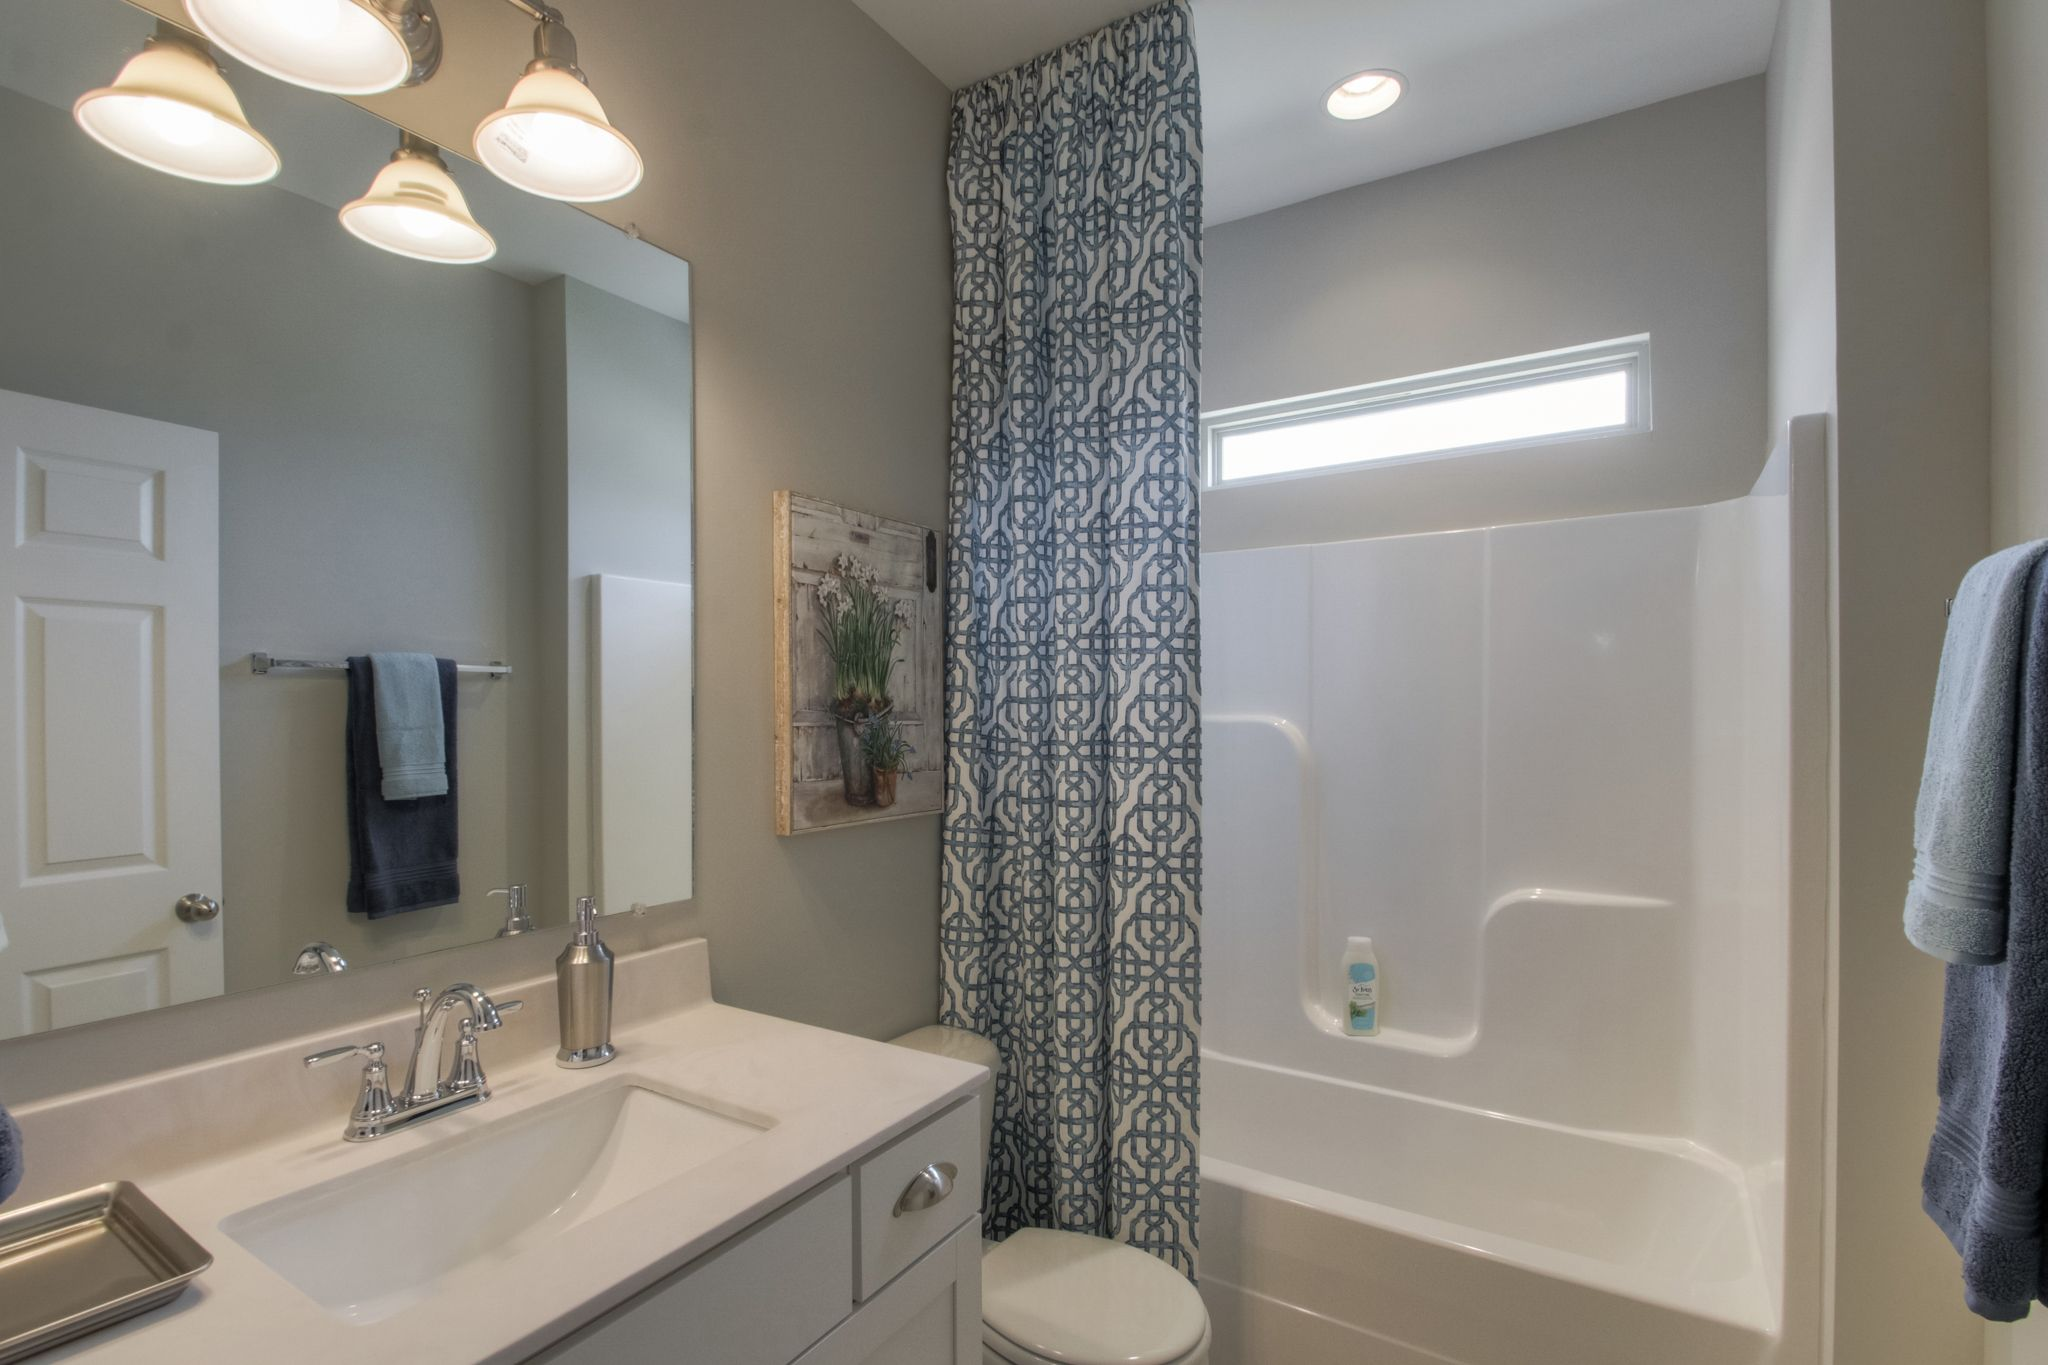 Bathroom featured in The Arlington By Goodall Homes in Nashville, TN